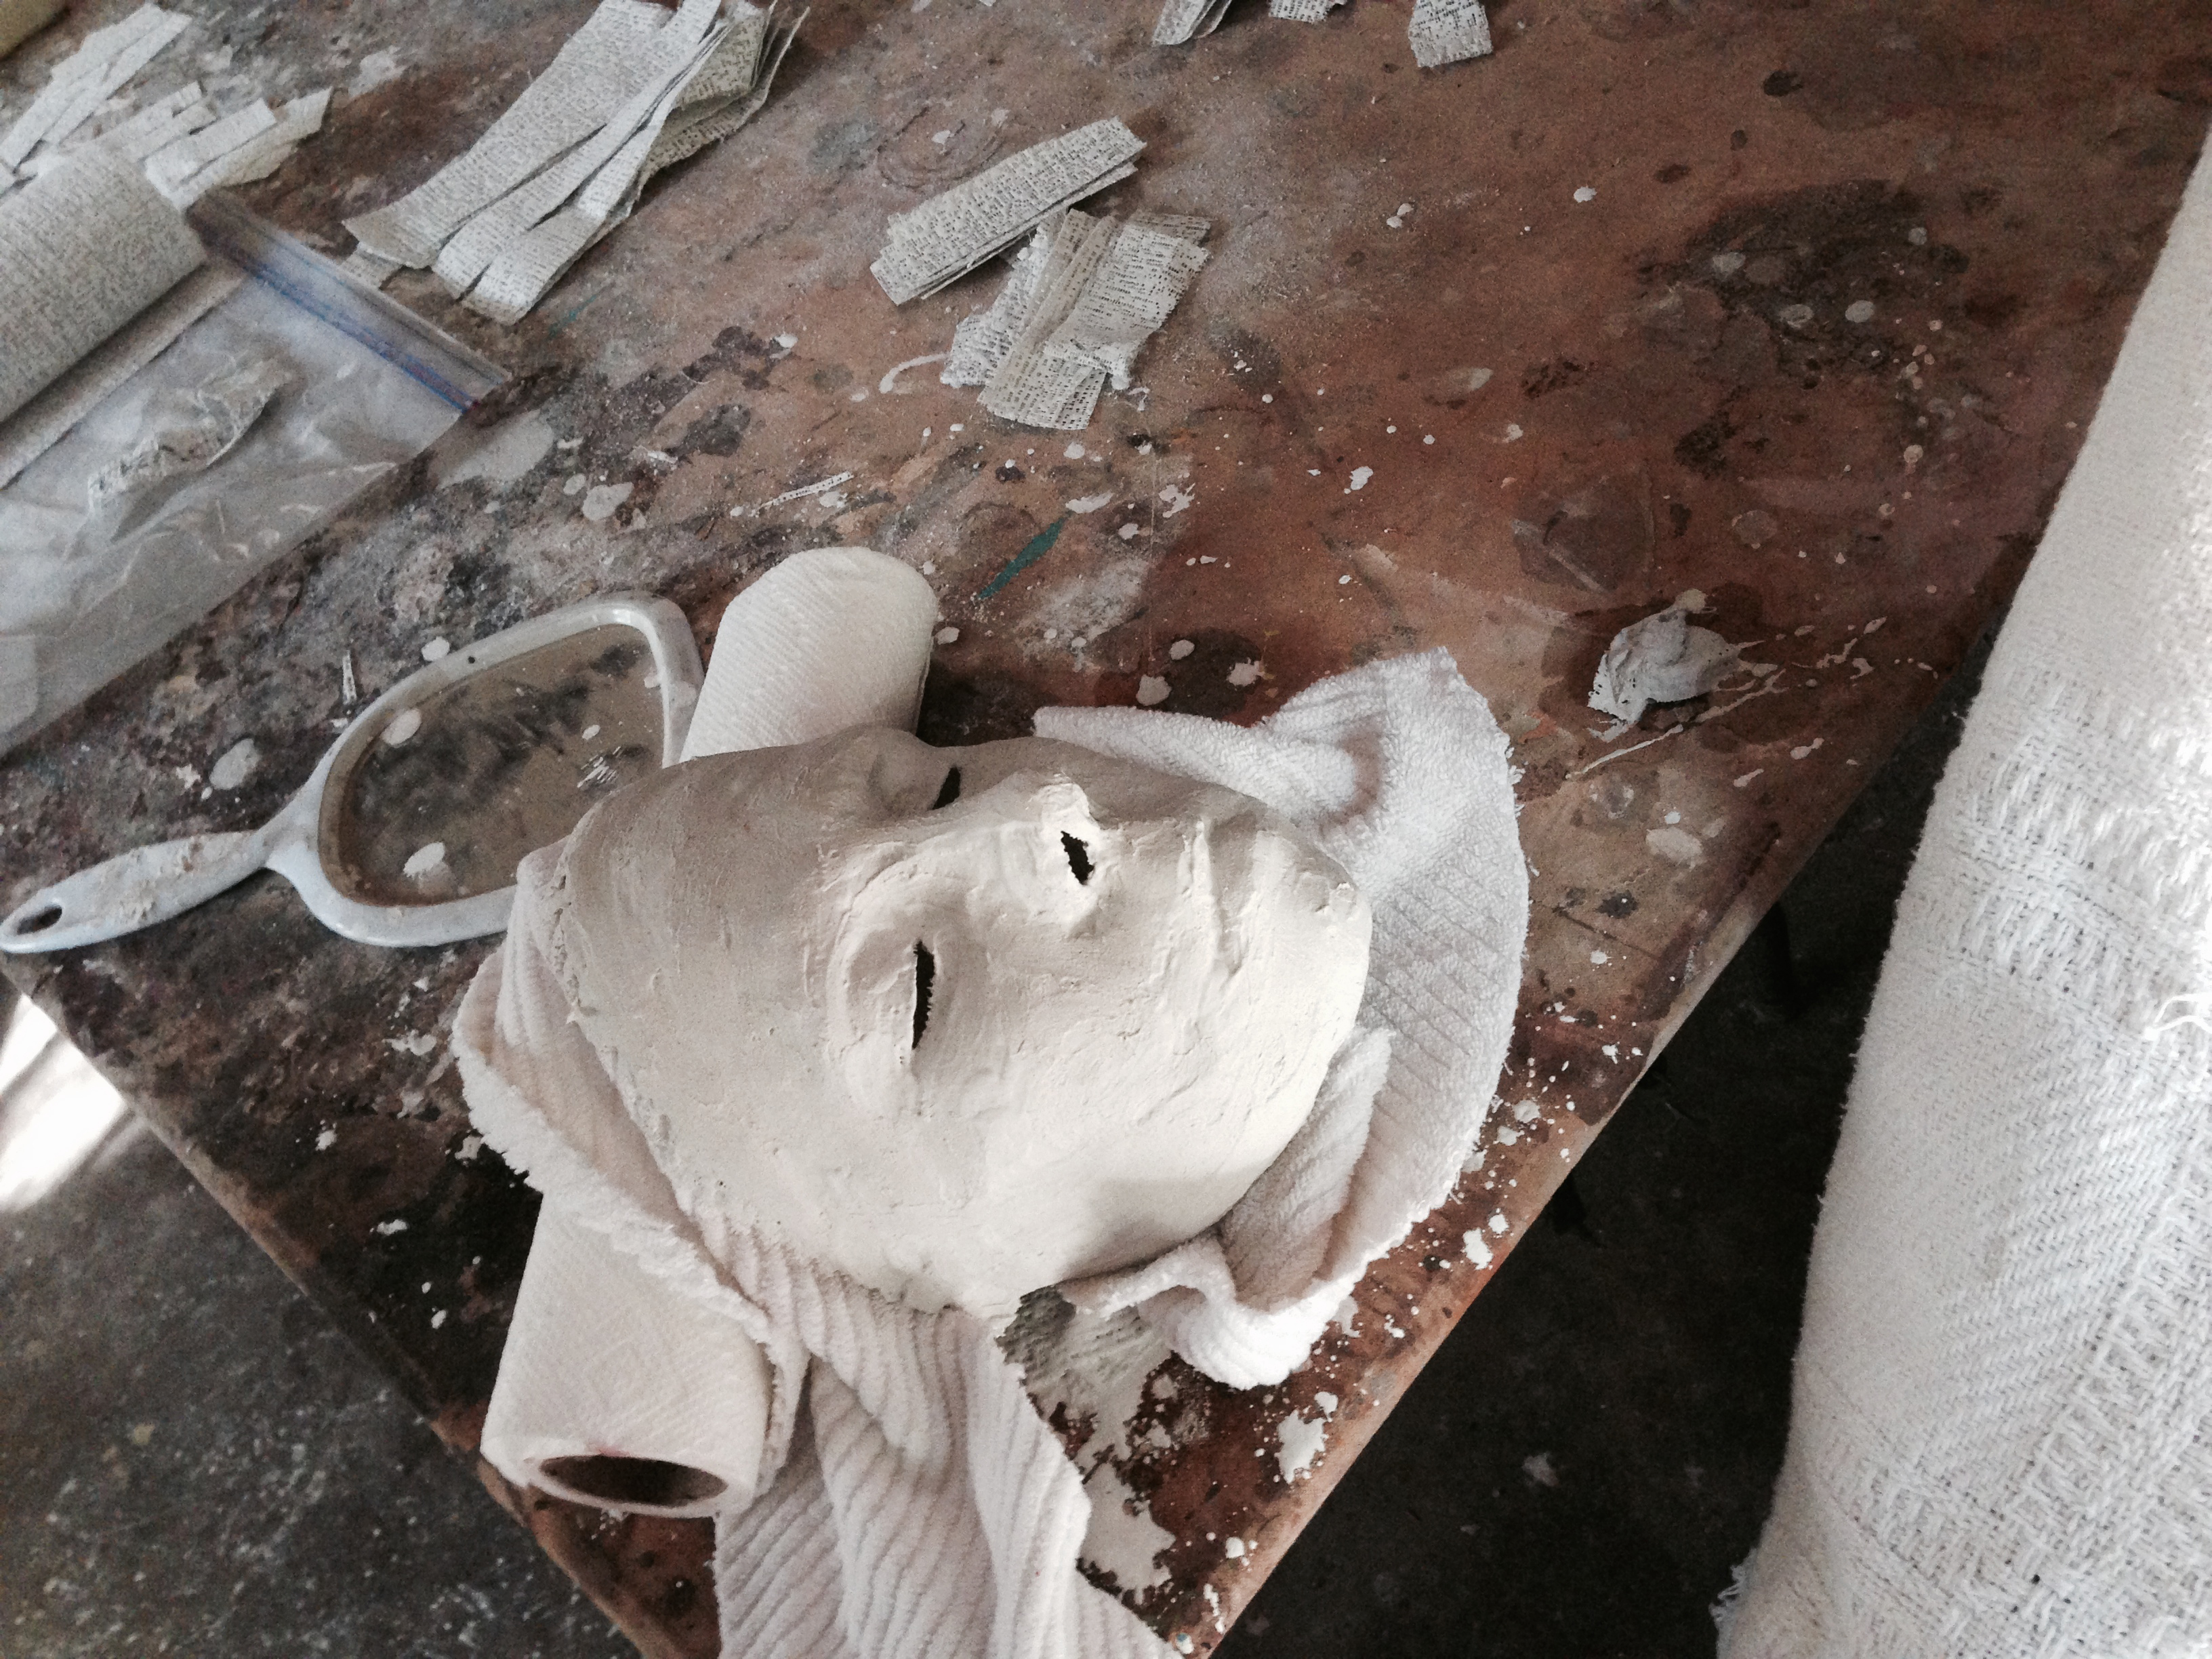 Mask as Ceremony of Release